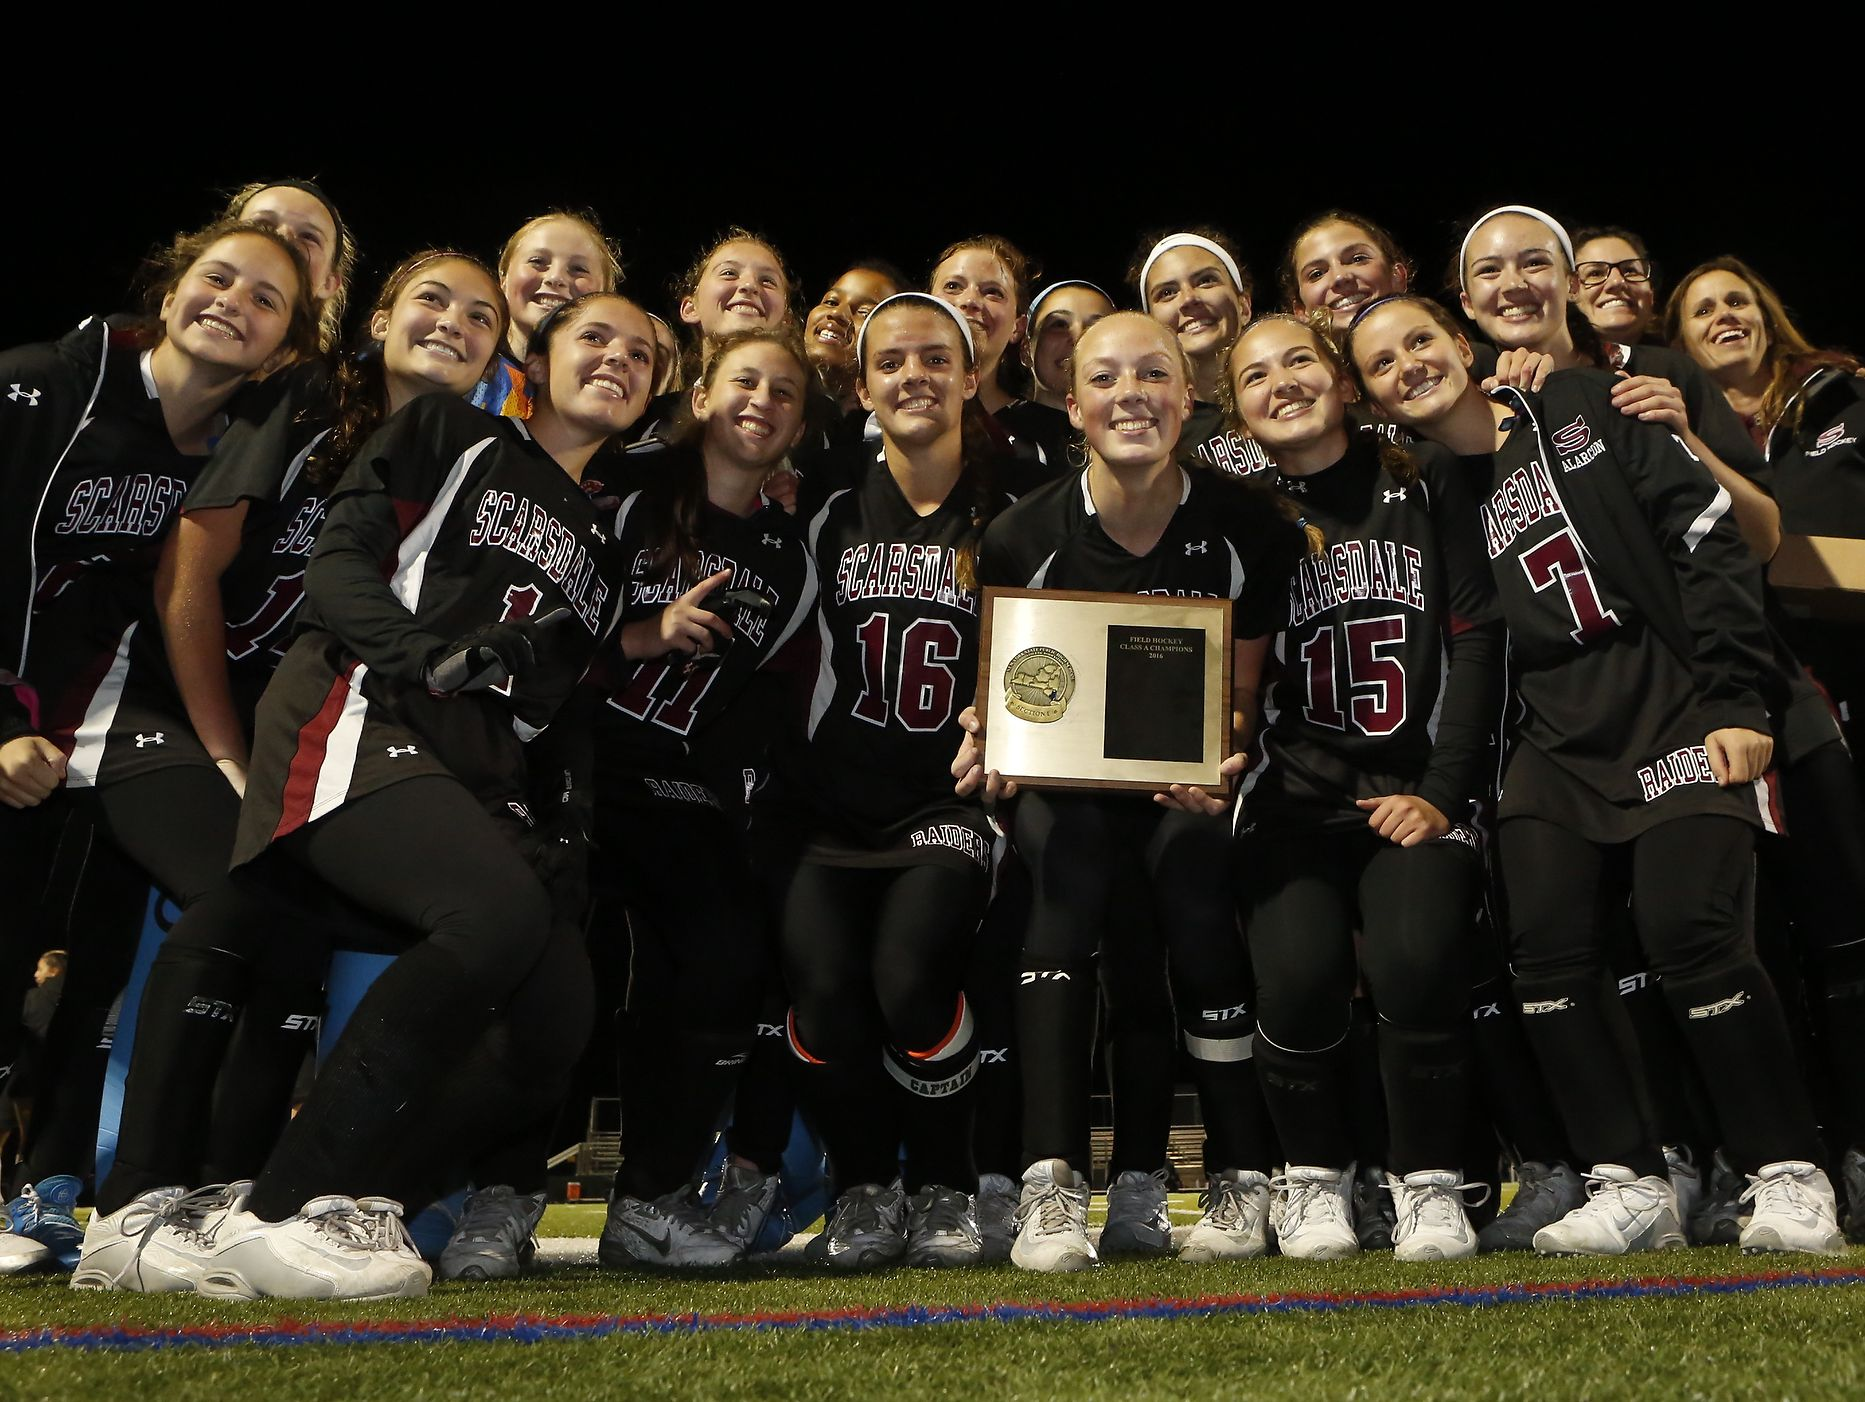 Scarsdale celebrates their 2-0 win over Mamaroneck in the Class A field hockey section finals at Brewster High School on Tuesday, November 1, 2016.